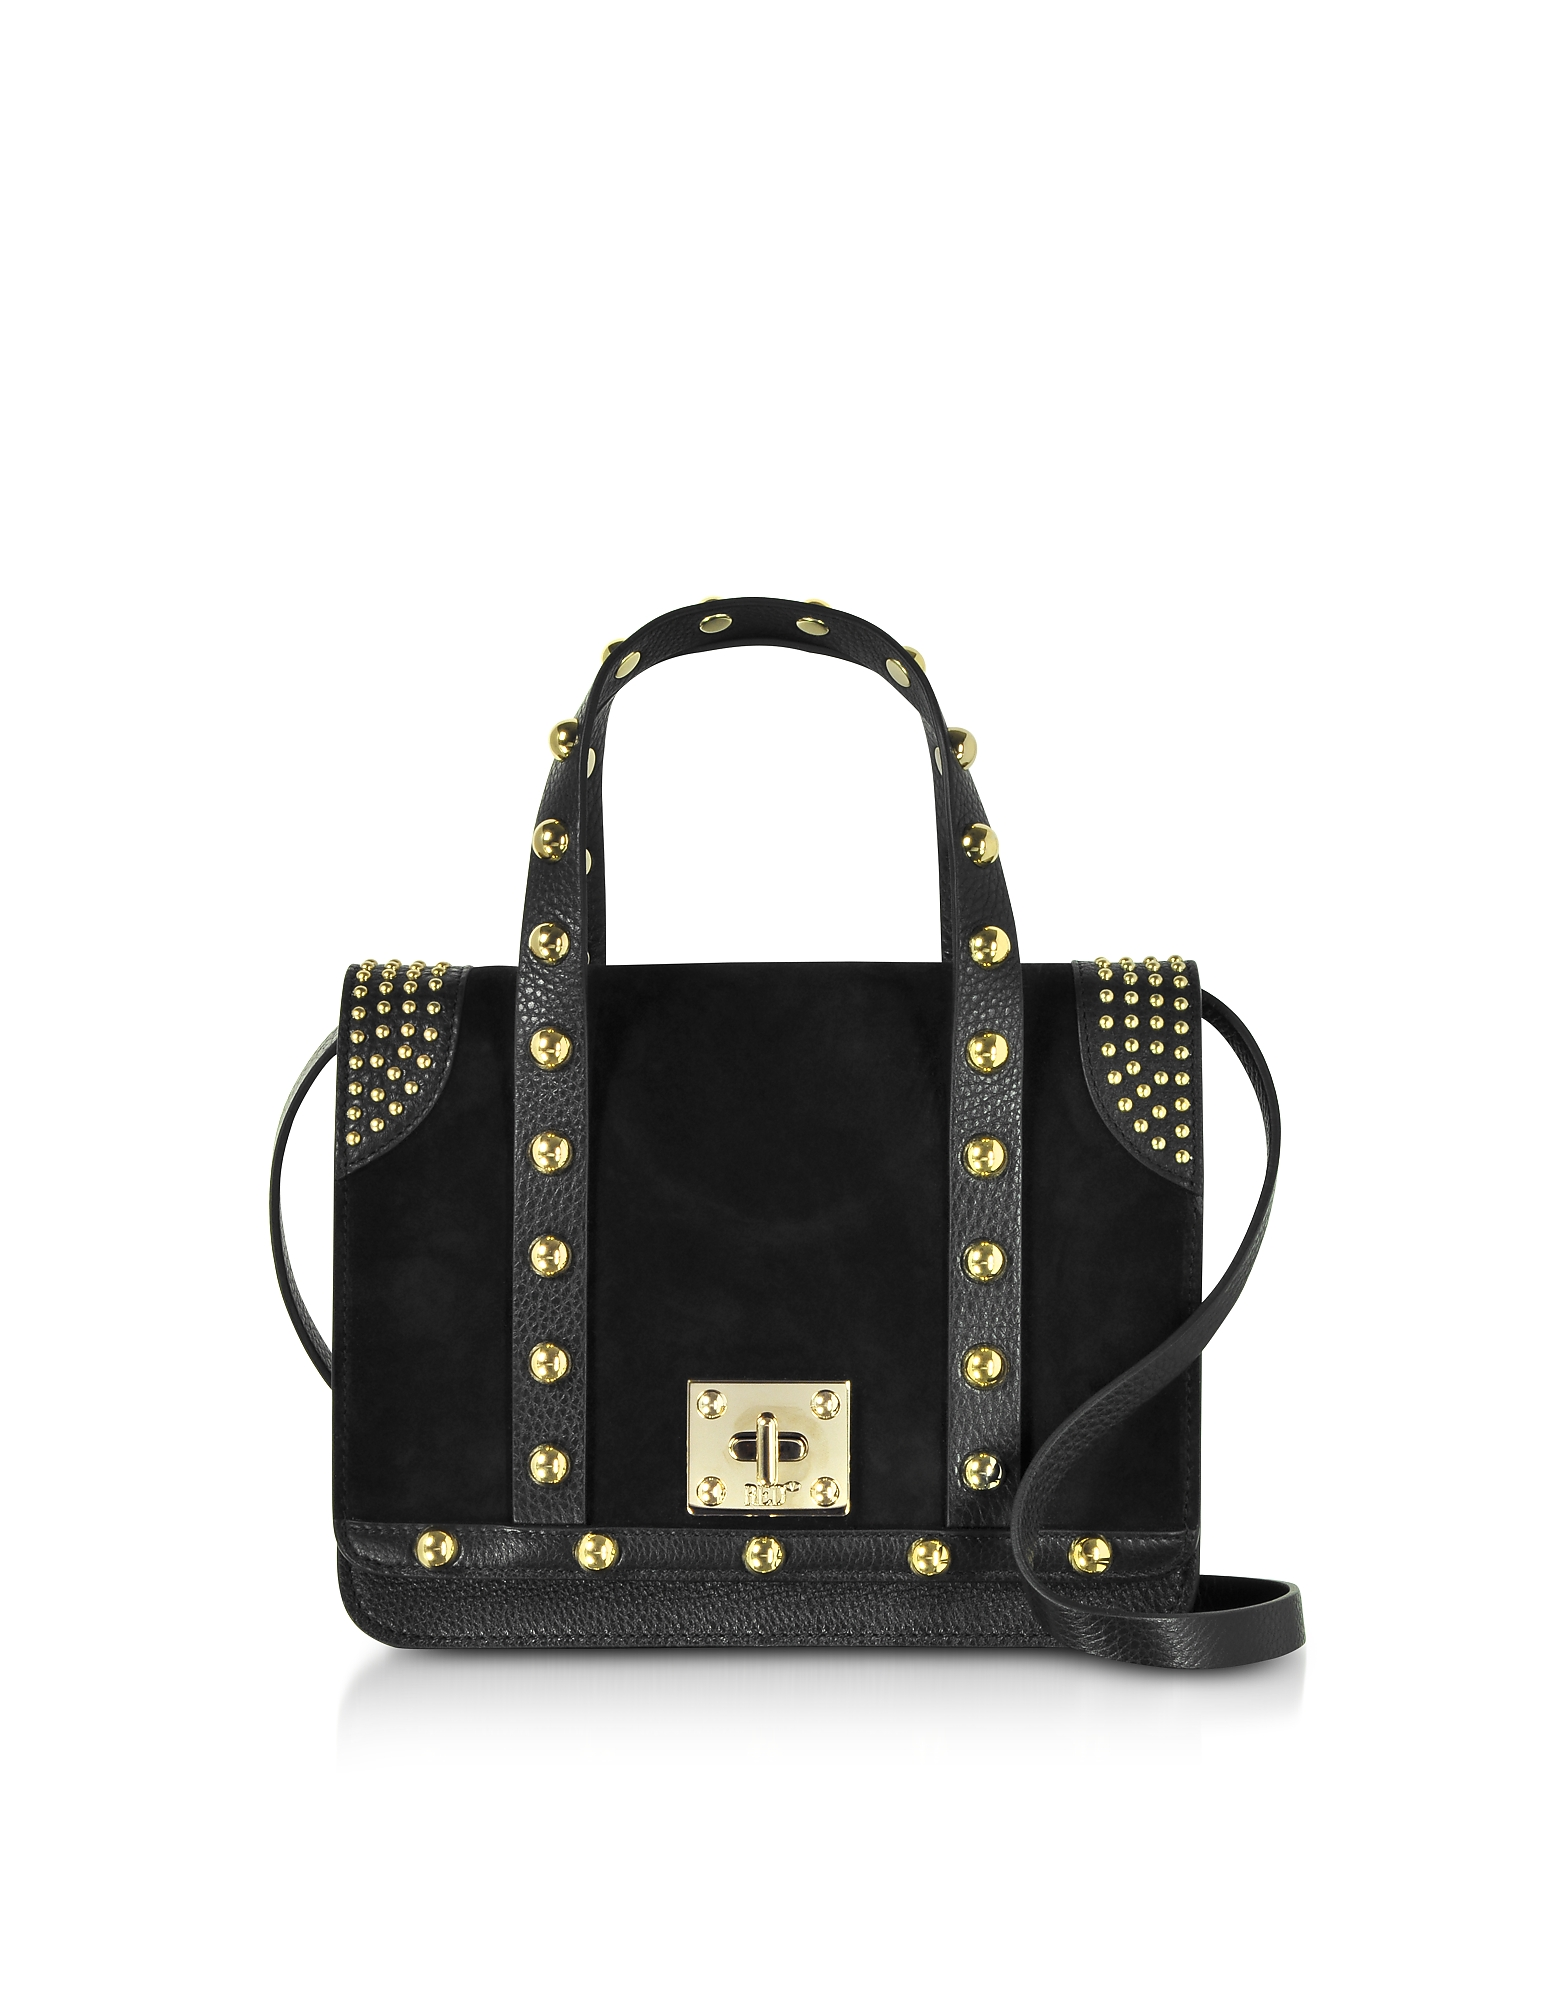 RED Valentino Handbags, Black Shuffle Bag